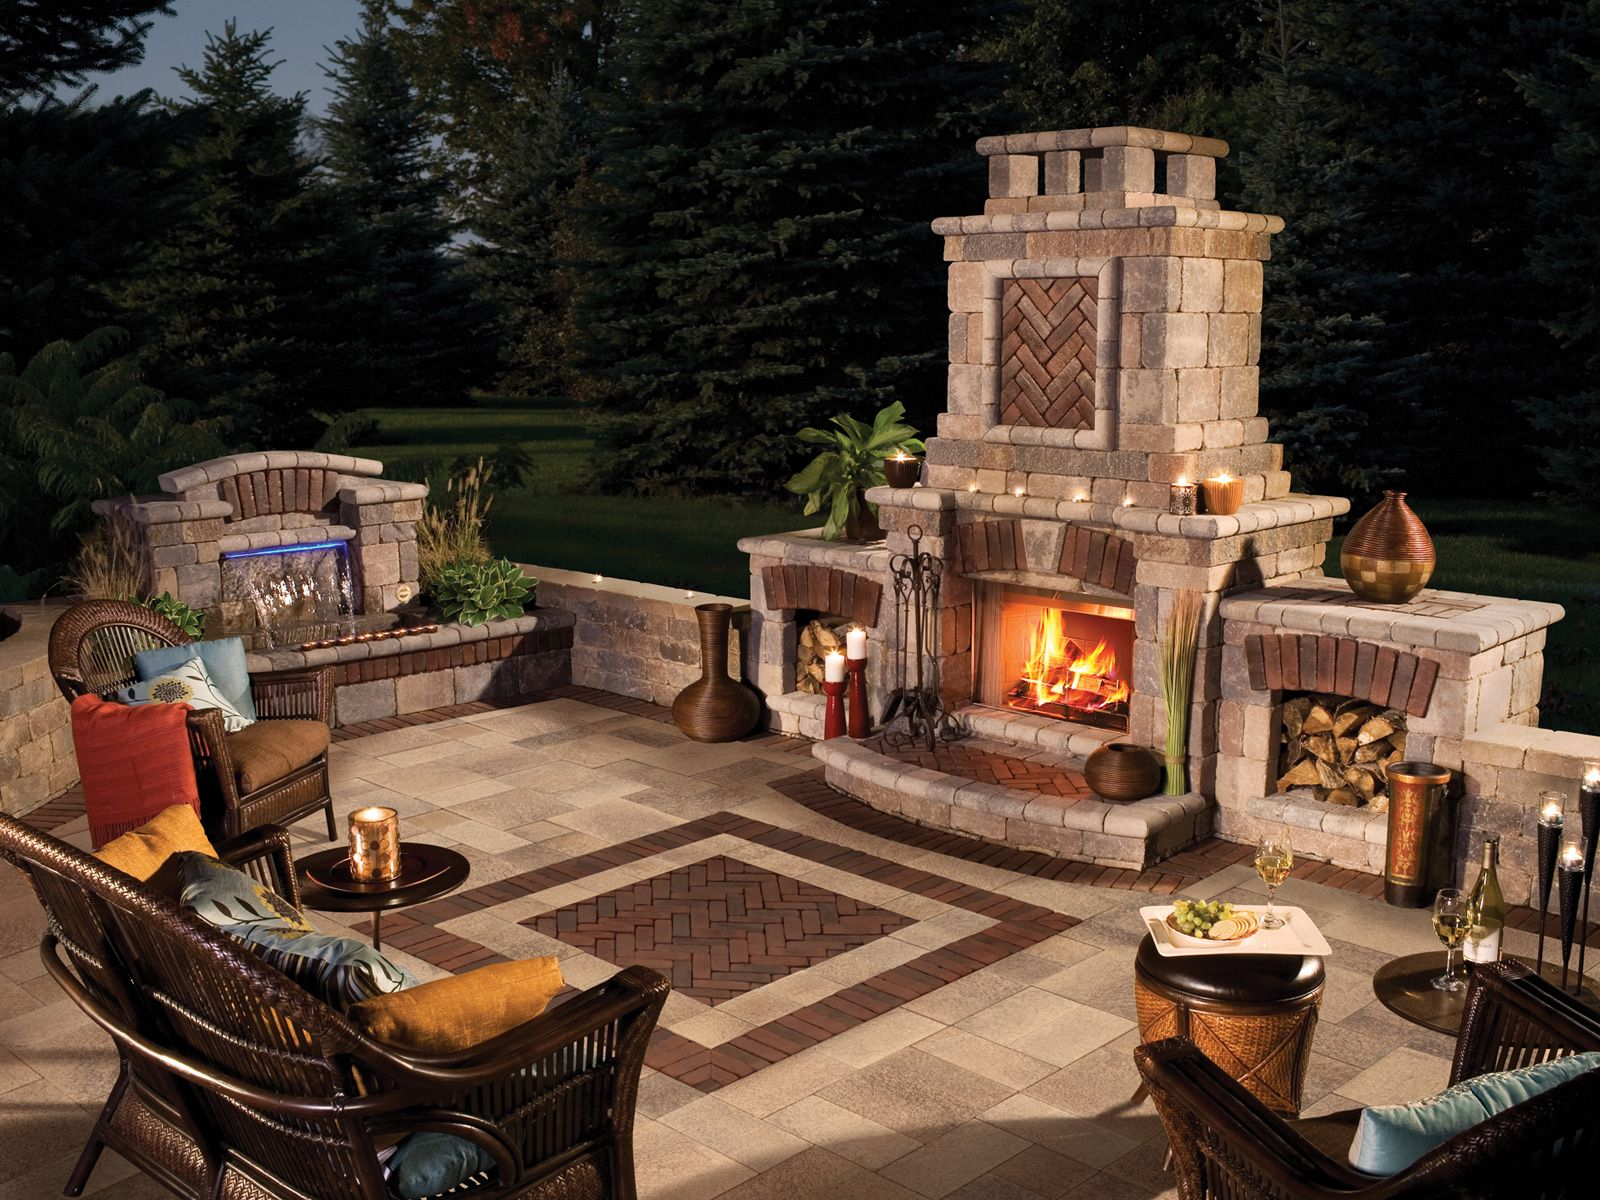 Backyard Patio Ideas With Fireplace3